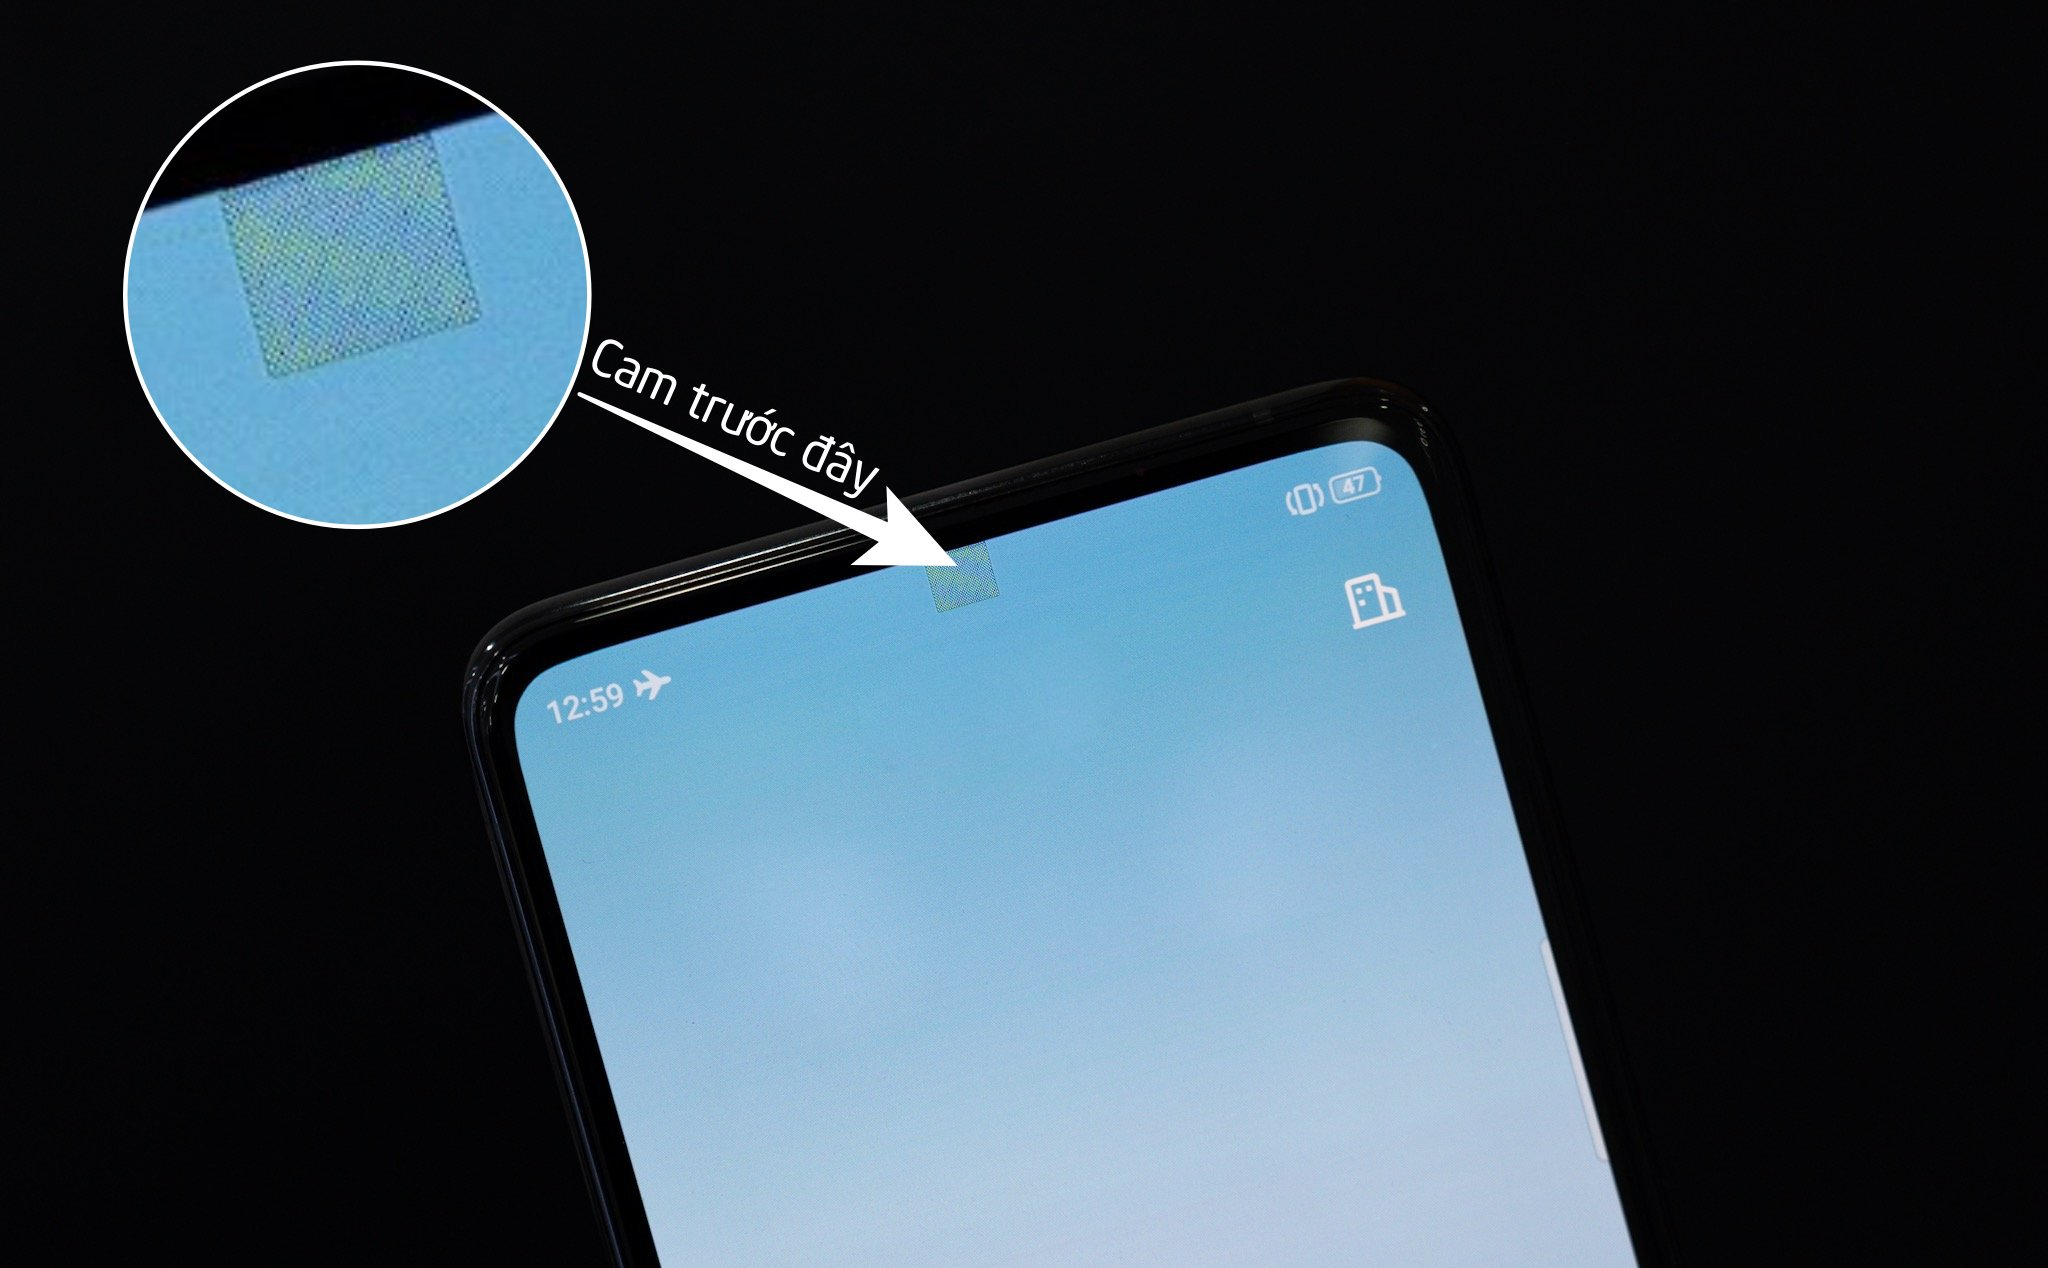 On the hand of Oppo phone is the camera located below the screen